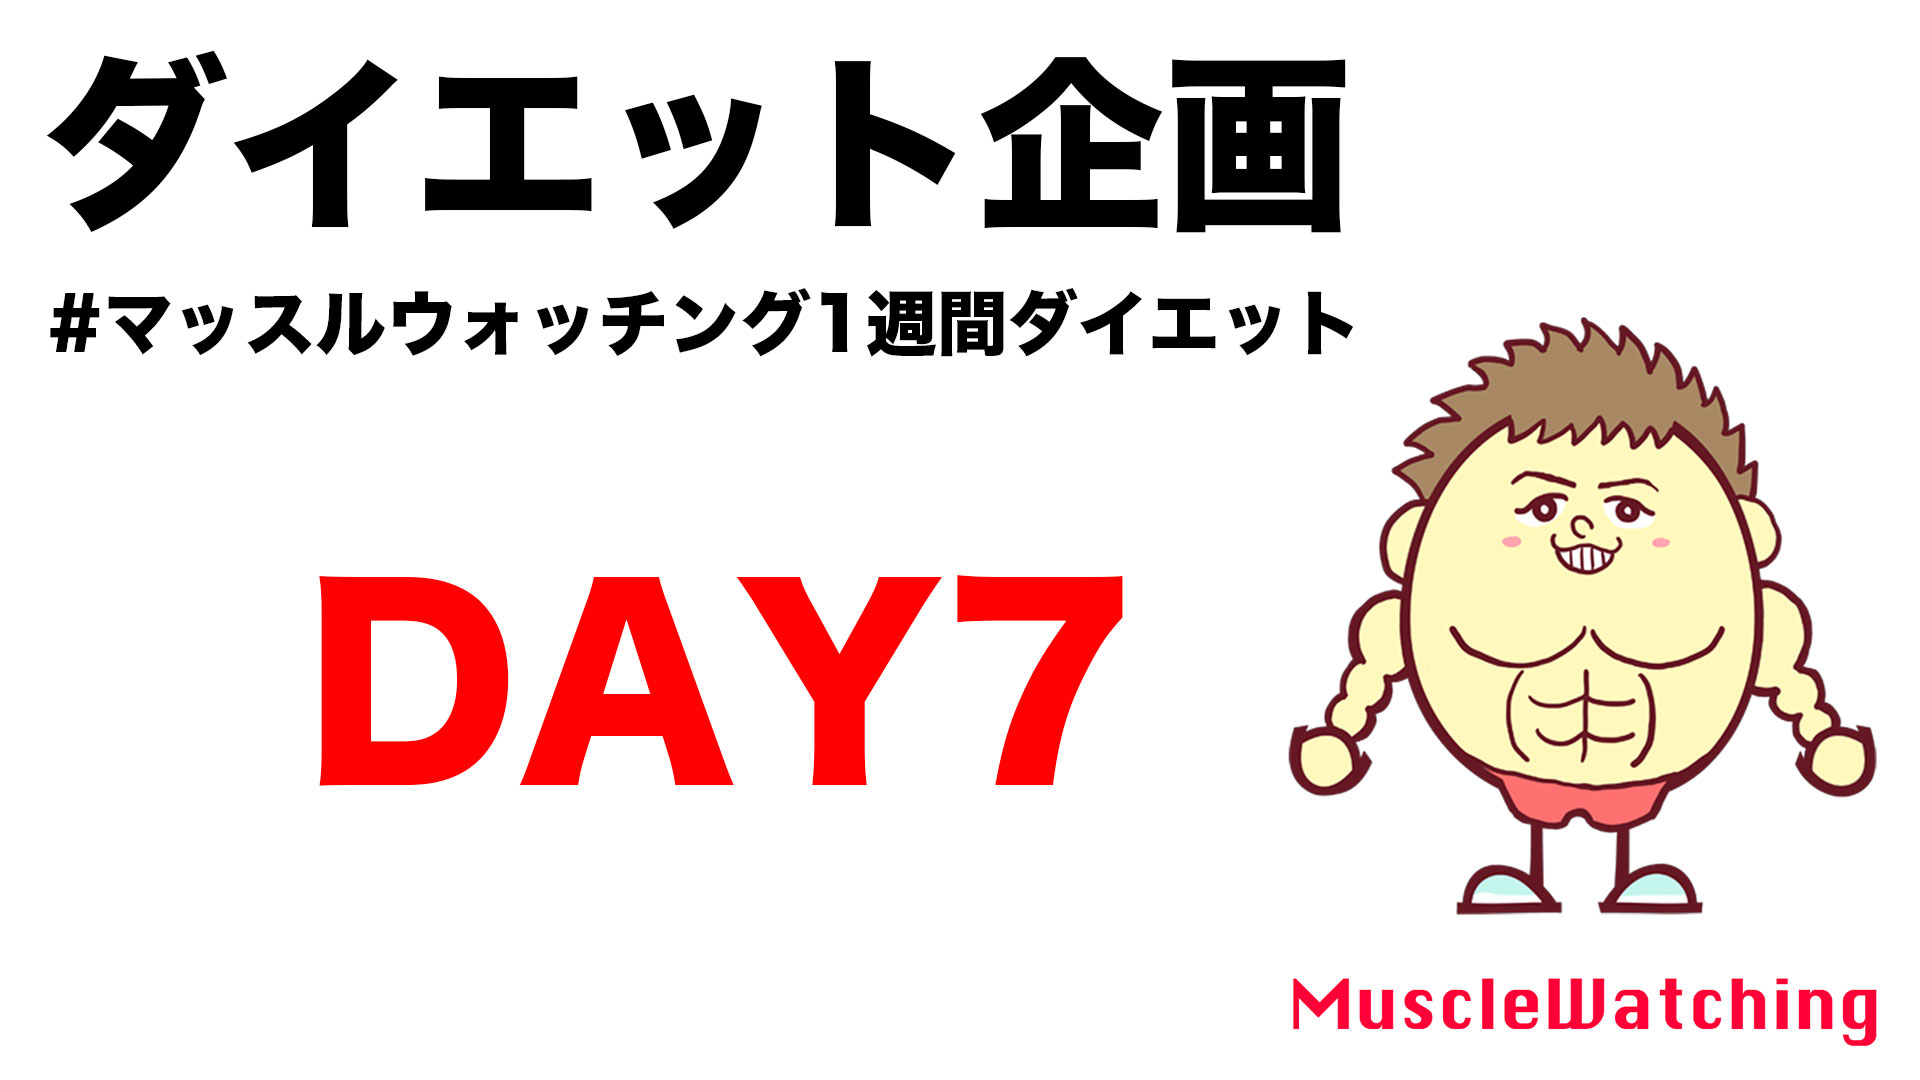 【DAY7】女性限定1週間ダイエット企画 | Muscle Watching